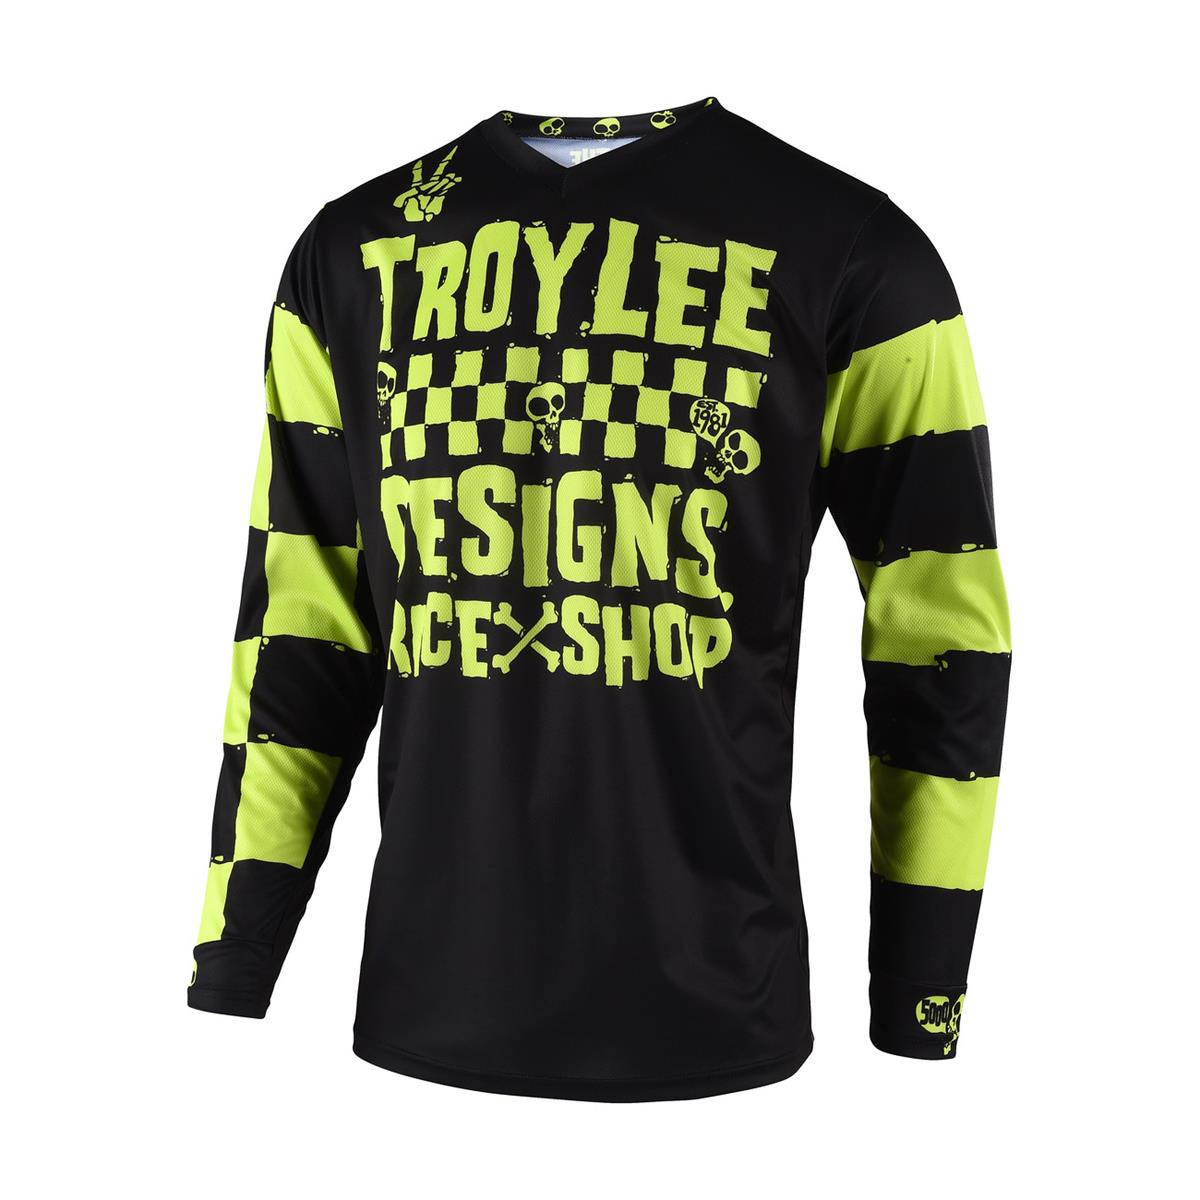 Troy Lee Designs Kids Jersey GP Raceshop 5000 - Lime